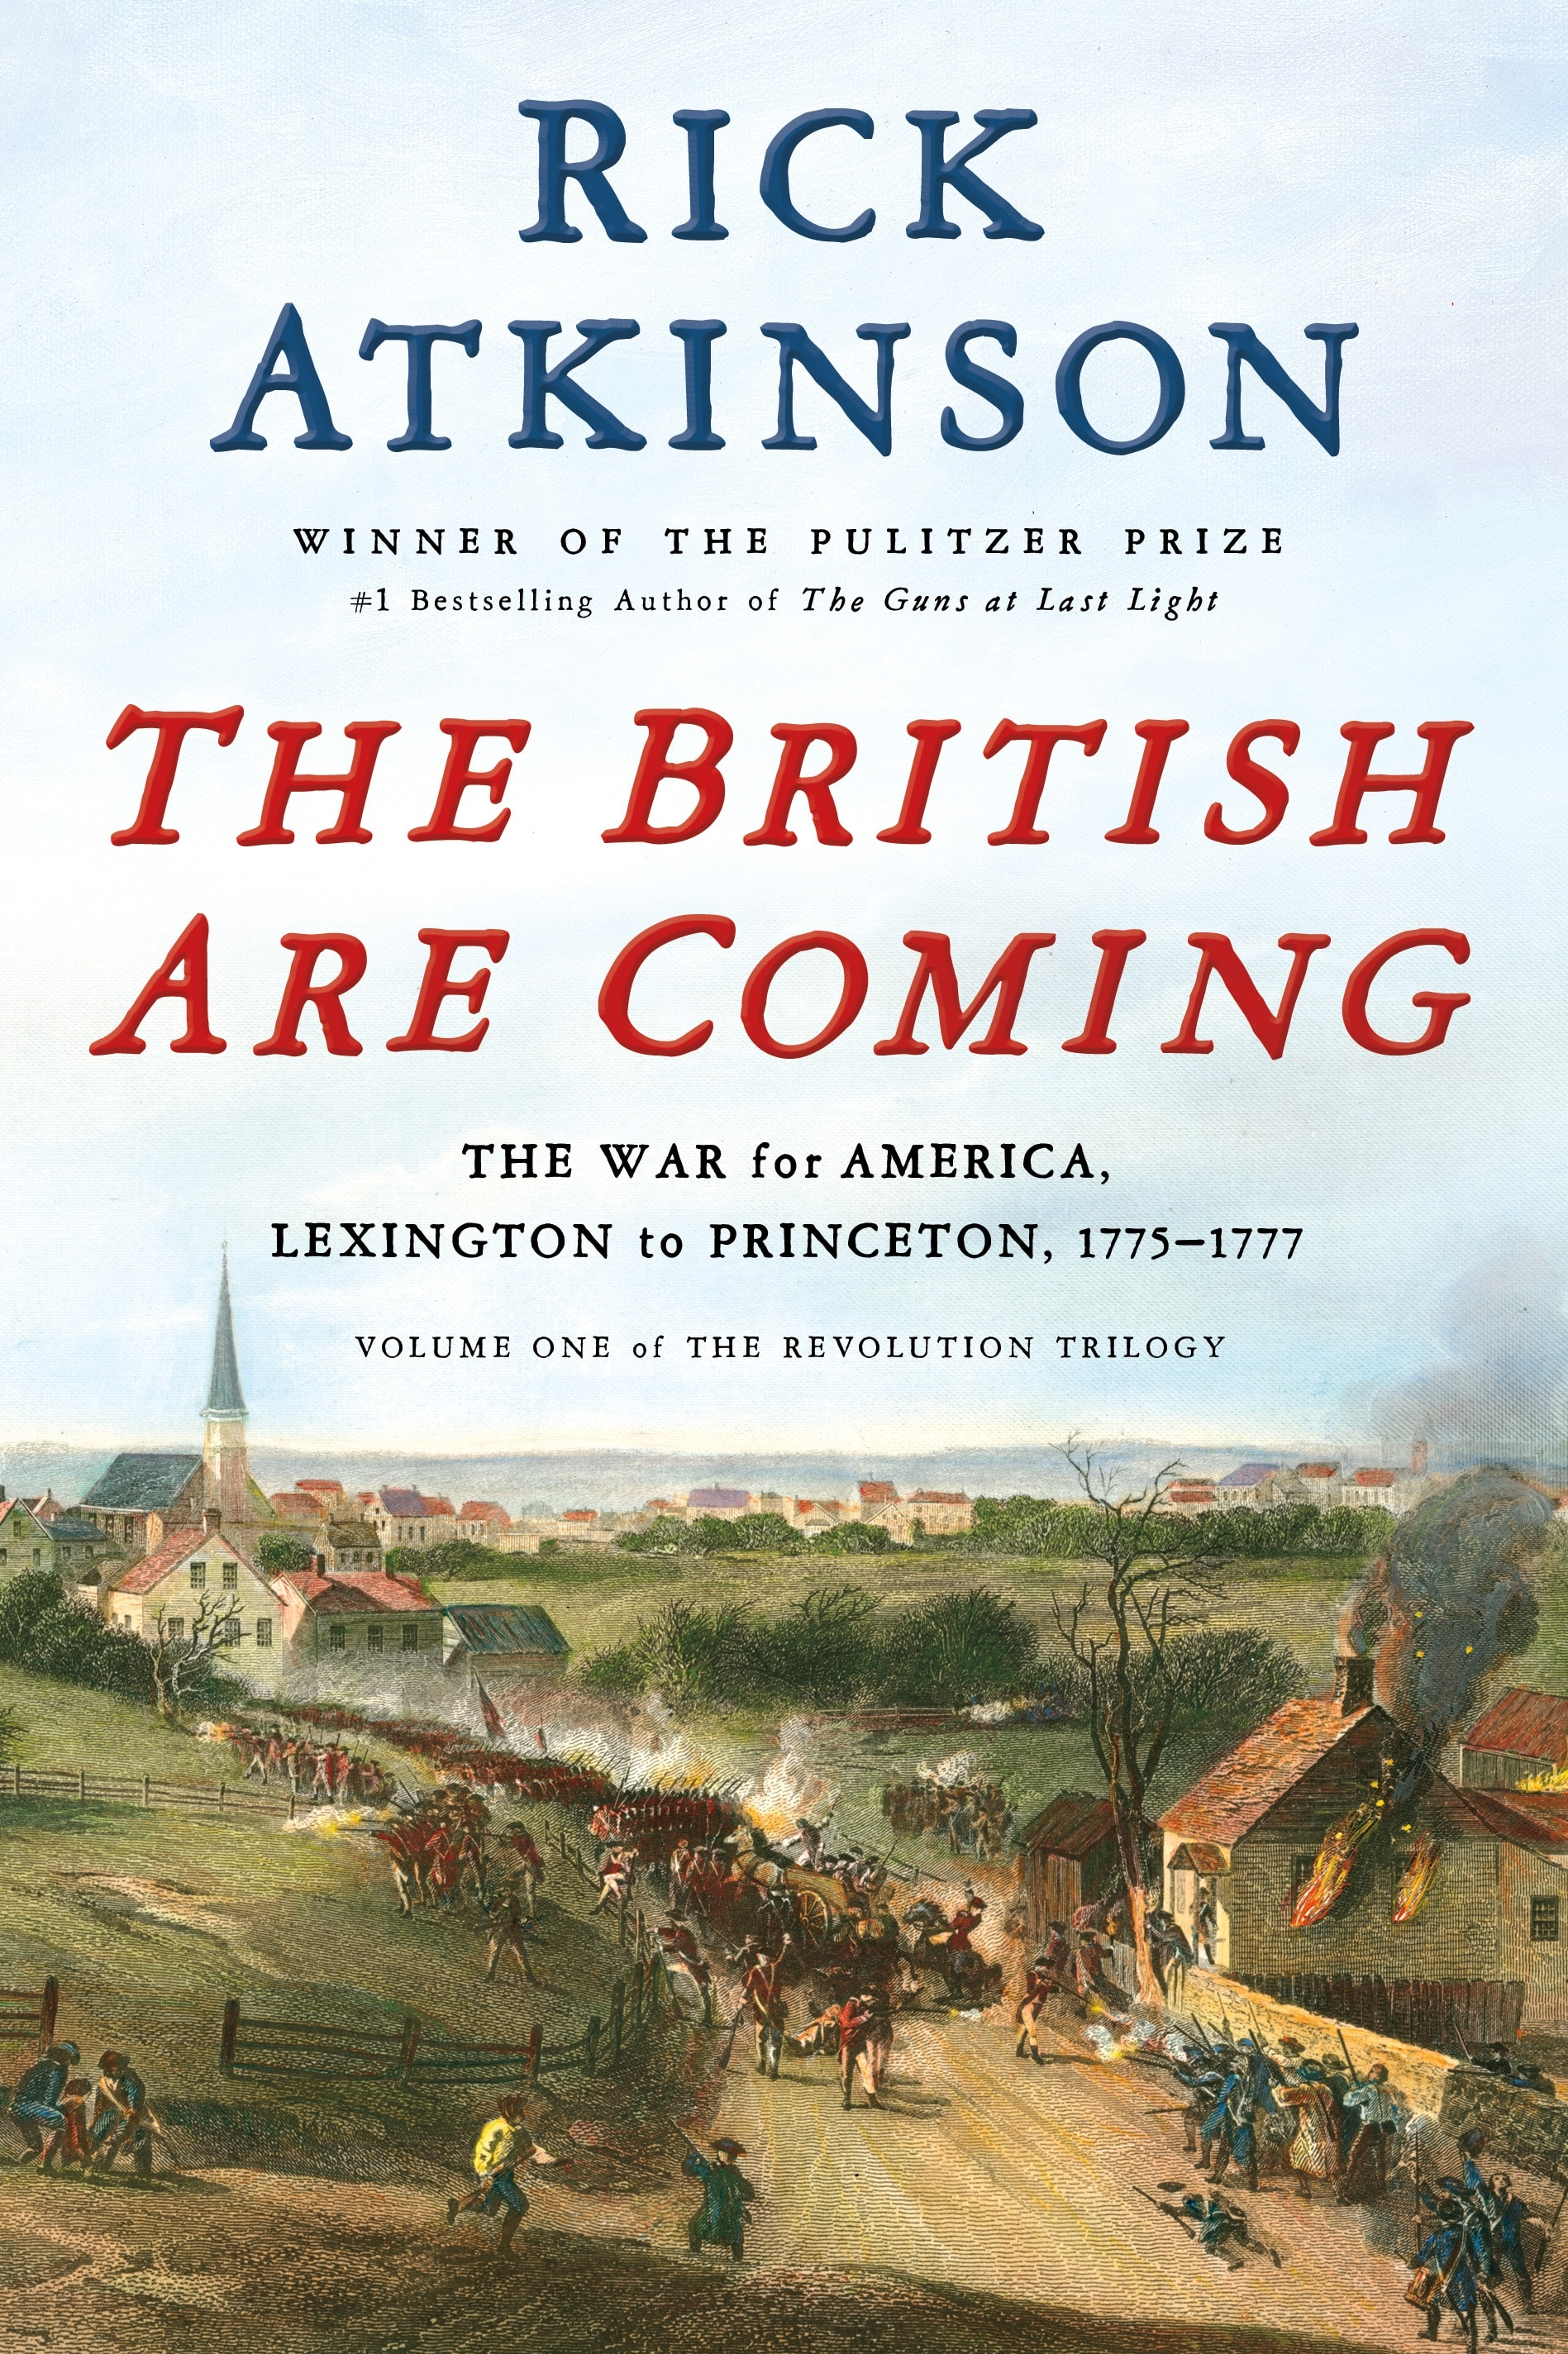 Cover, THE BRITISH ARE COMING The War for America, Lexington to Princeton, 1775-1777 VOLUME ONE OF THE REVOLUTION TRILOGY